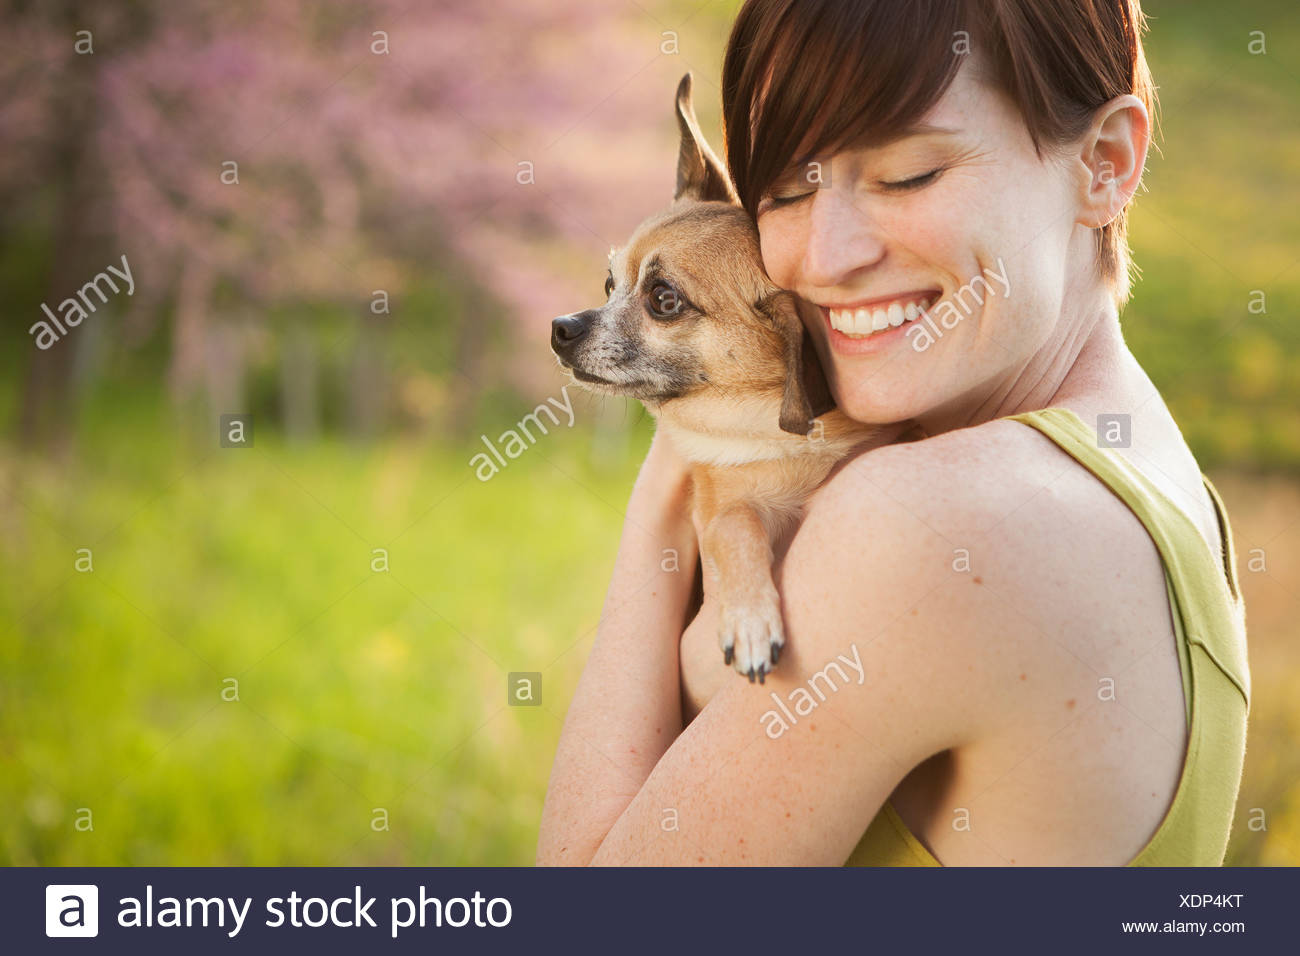 A young woman in a grassy field in spring. Holding a small chihuahua dog in her arms. A pet. - Stock Image